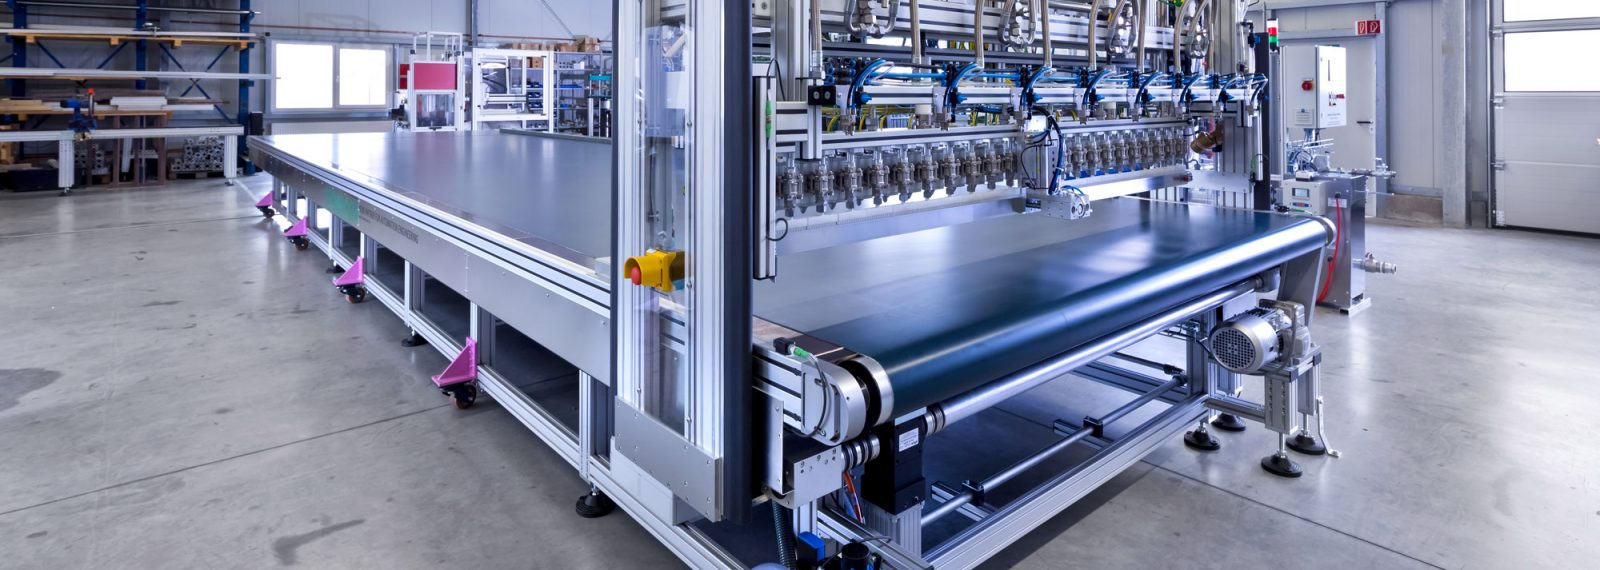 adhesive-application-klebstoffauftrag-system-technicon-festo